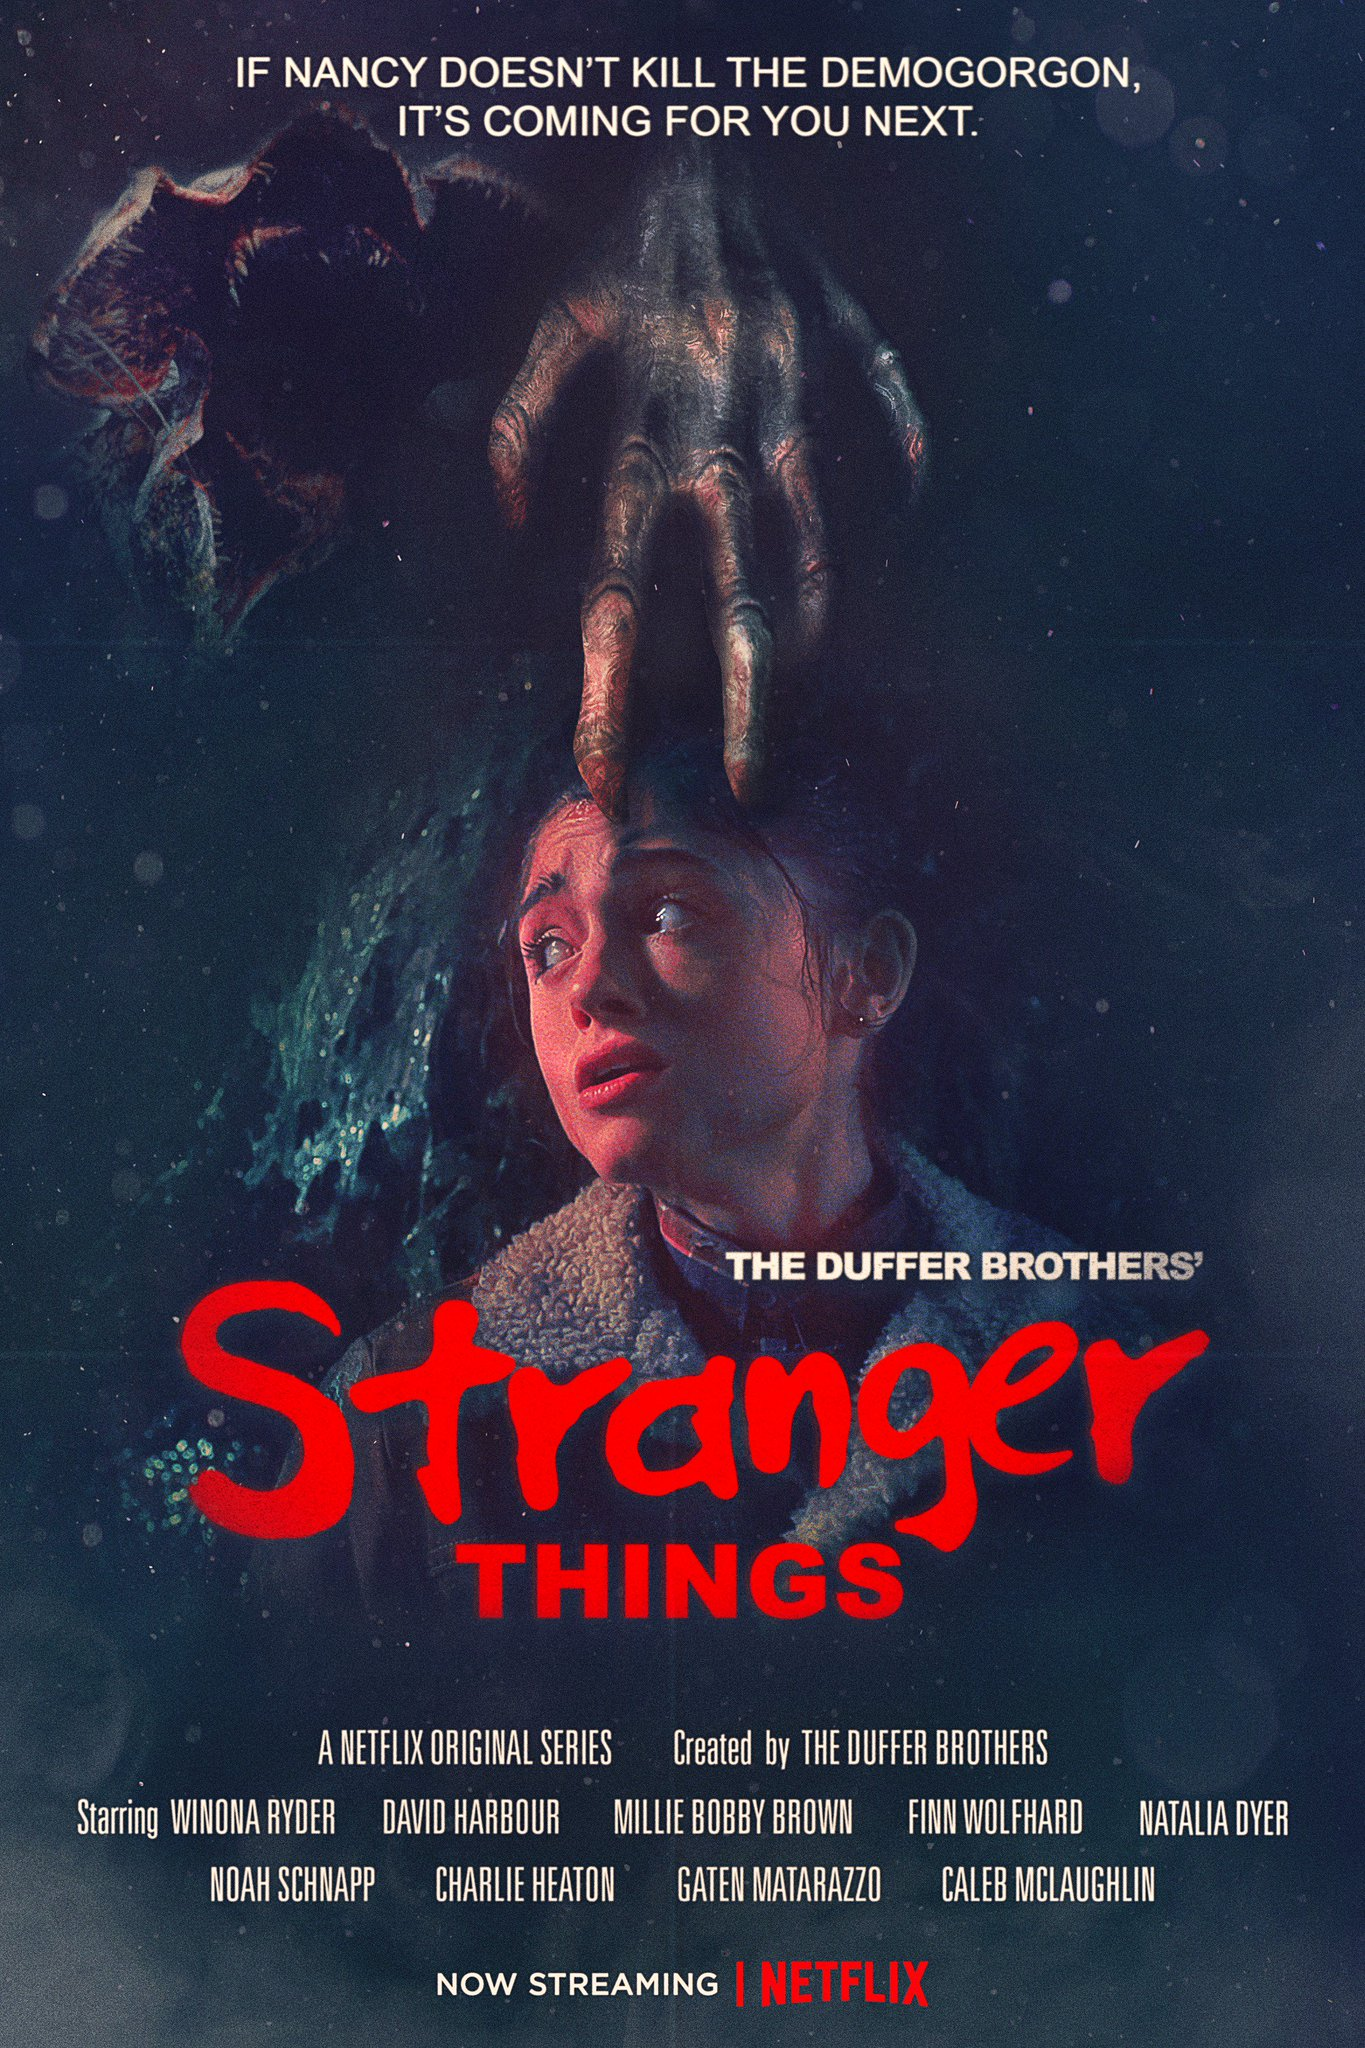 Stranger Things                 - Page 3 DG3rlktW0AEfc4f